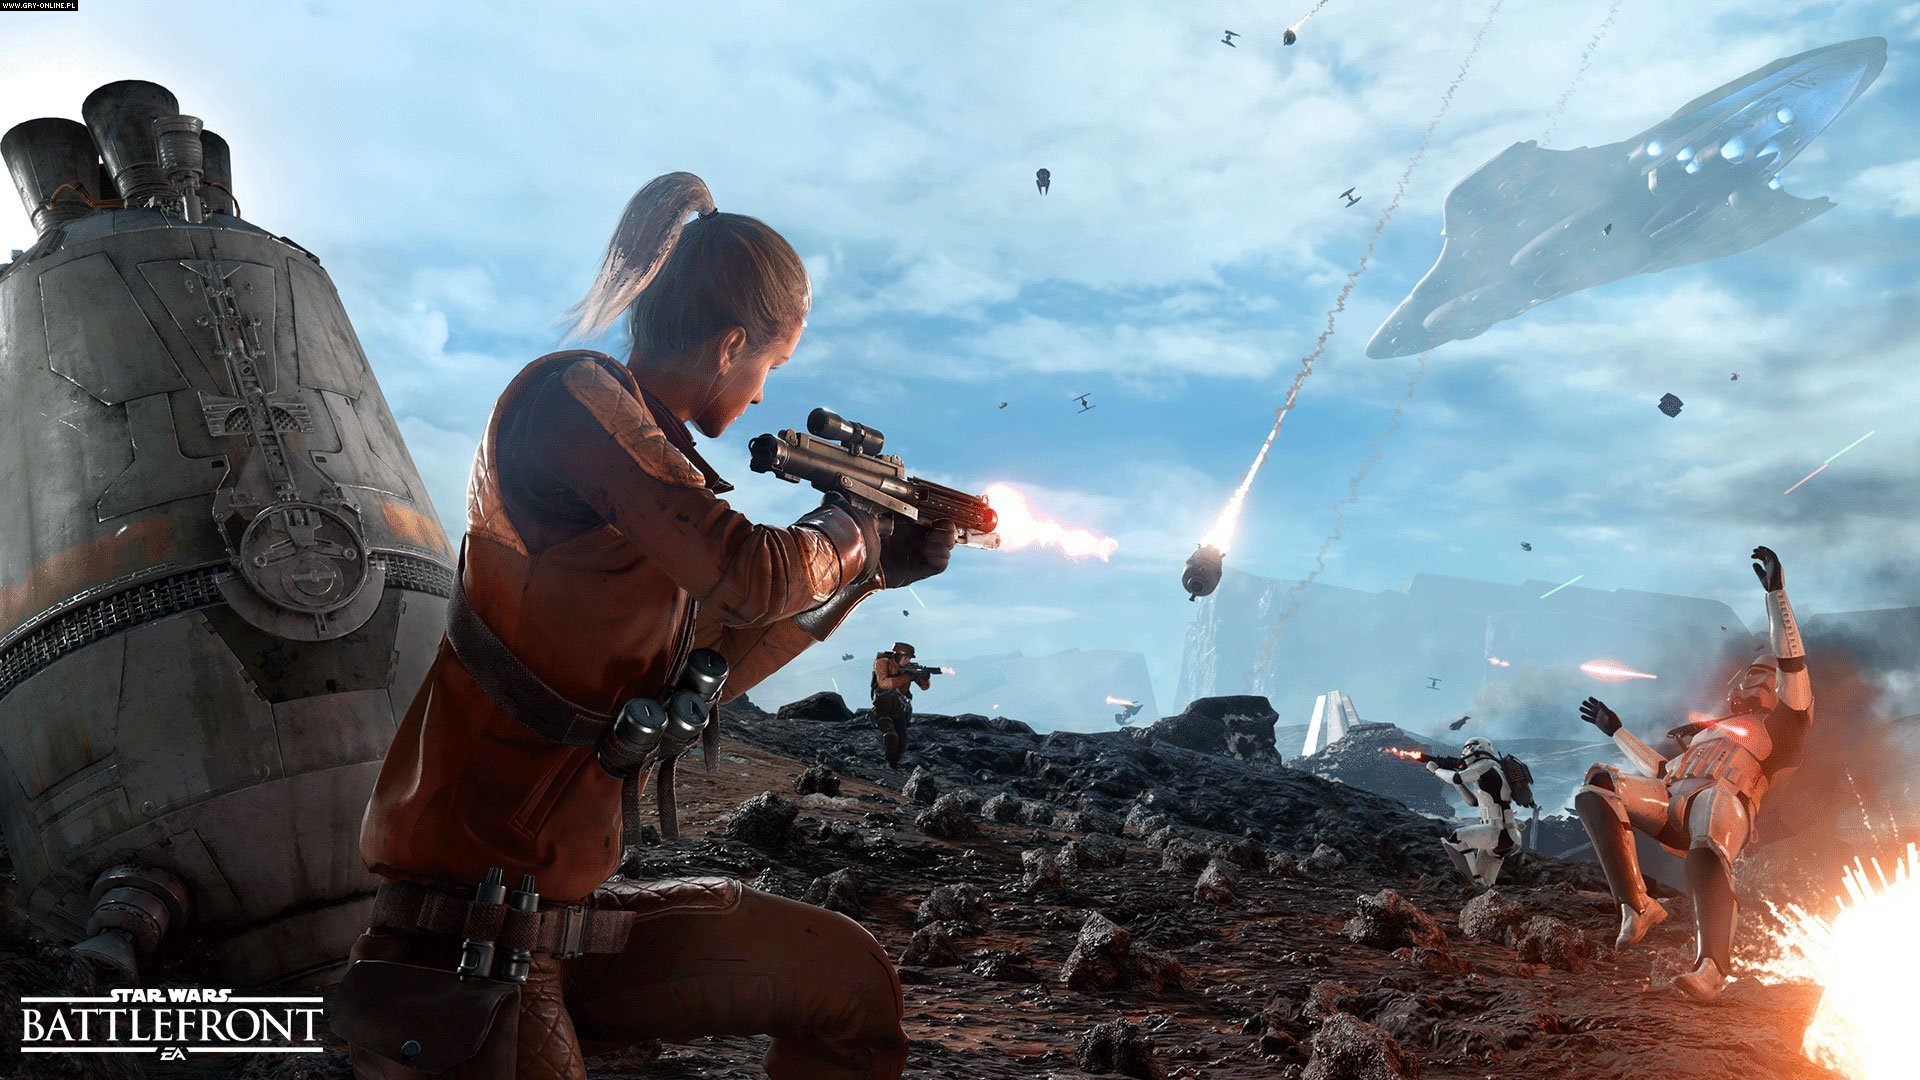 Star Wars: Battlefront XONE, PS4, PC Games Screen 15/27, EA Digital Illusions/EA DICE, Electronic Arts Inc.